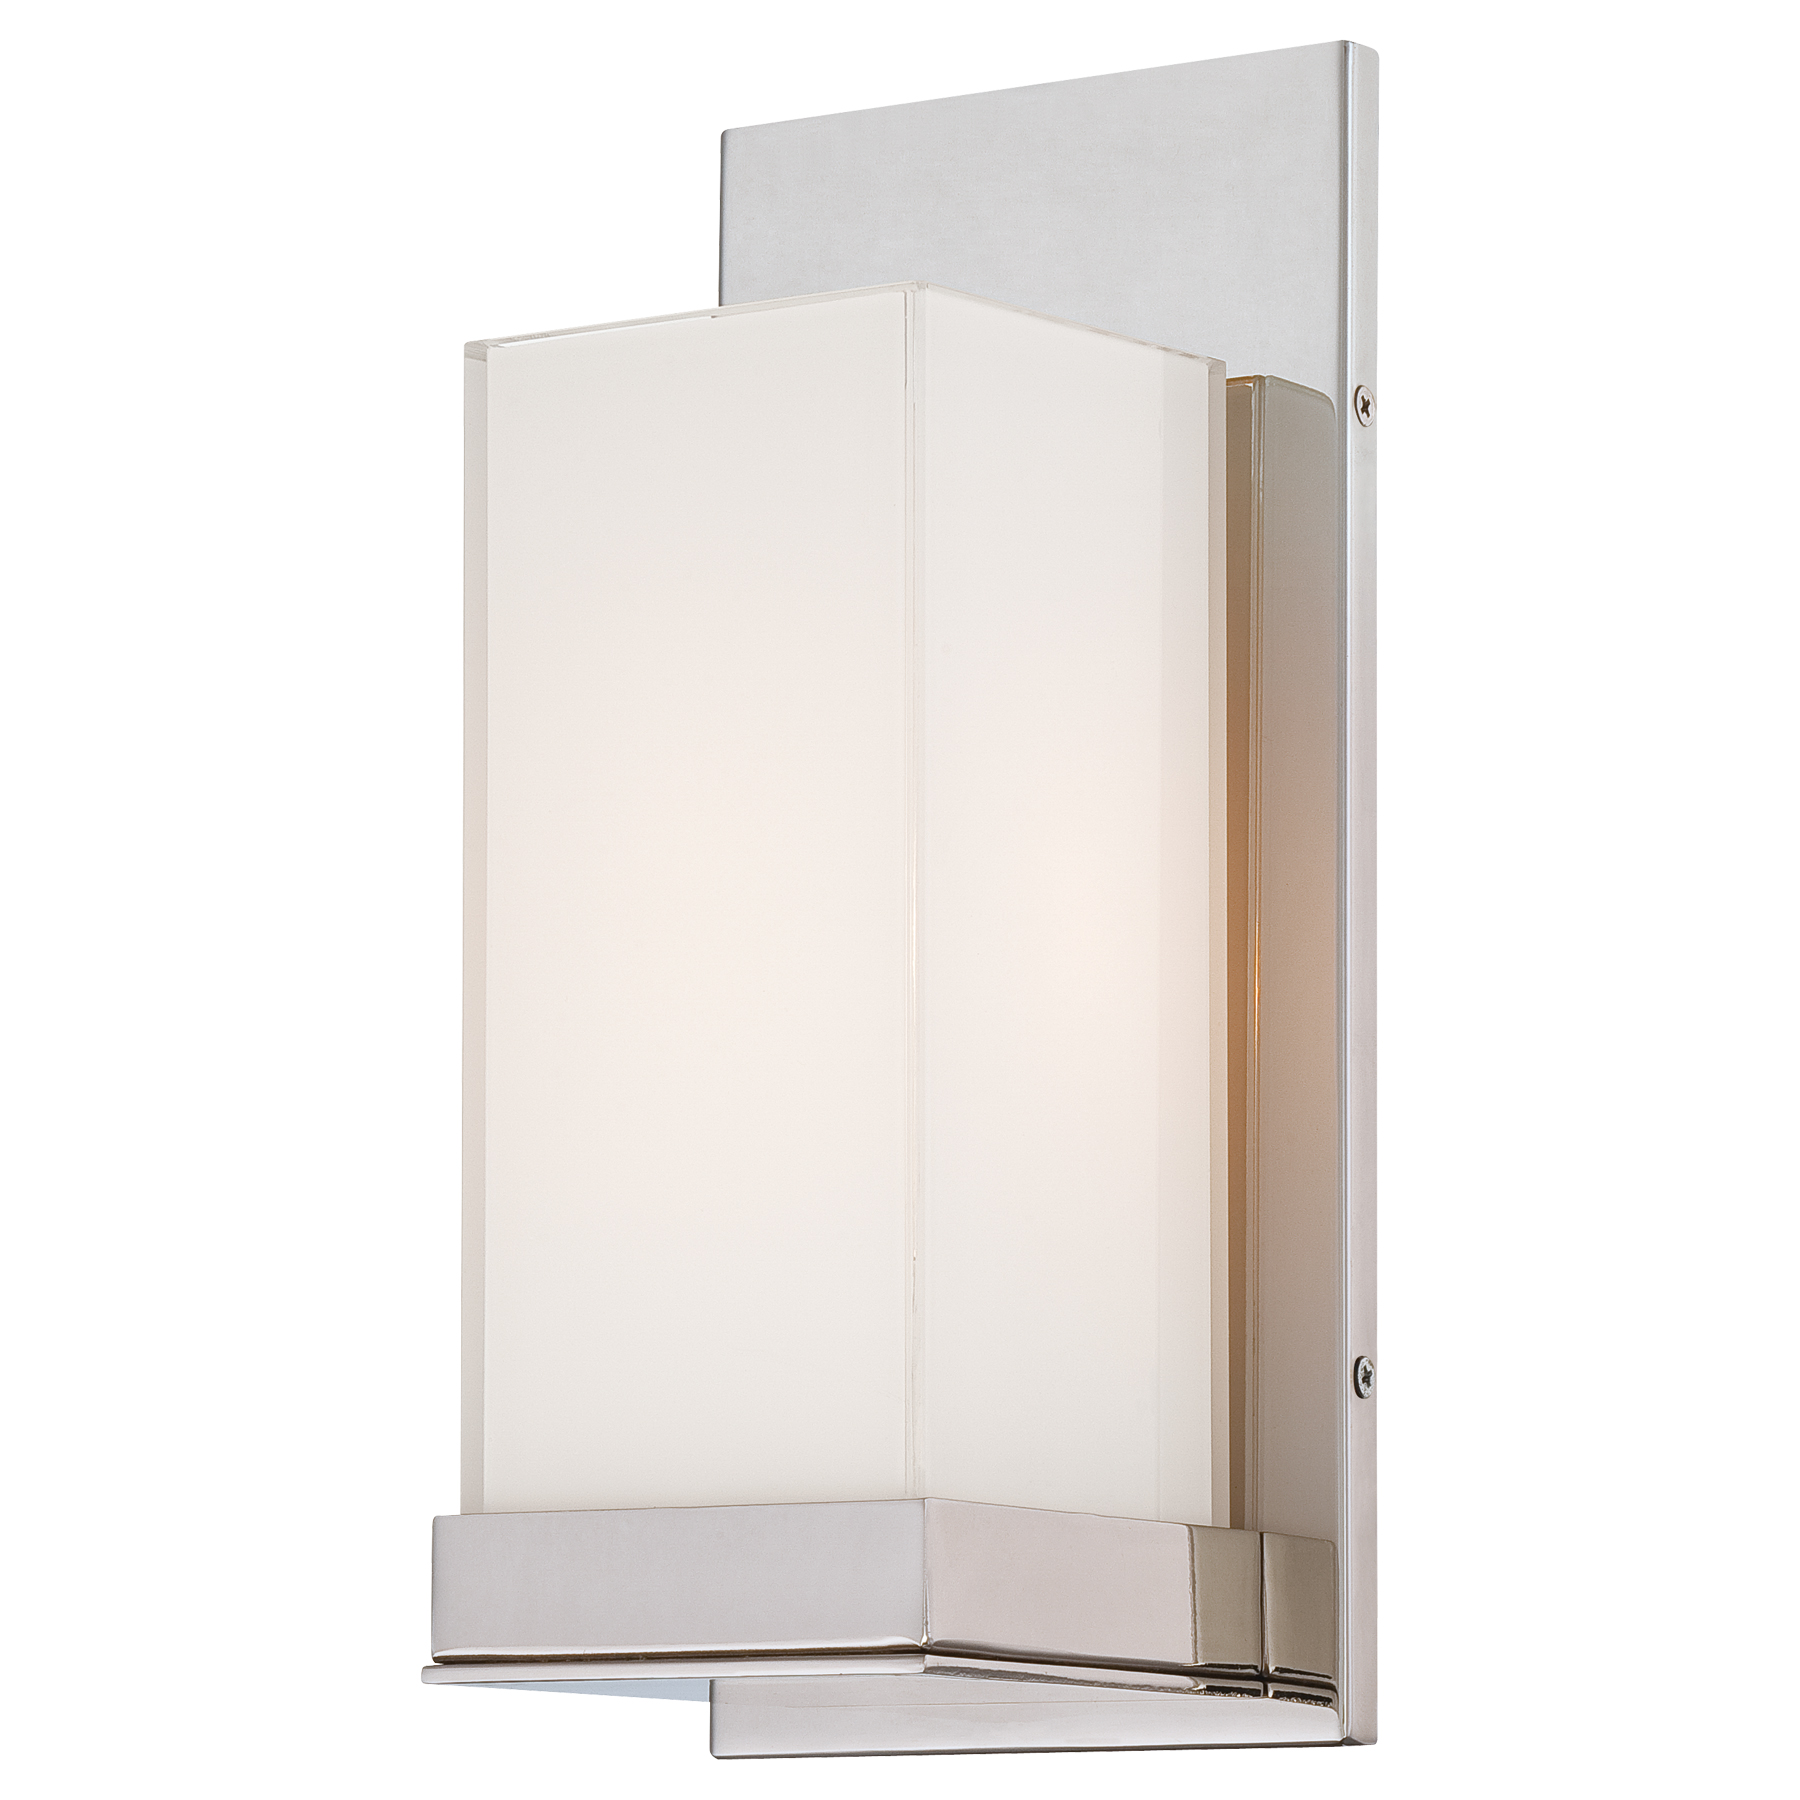 P1700 Wall Light By George Kovacs | P1700 613 Part 57